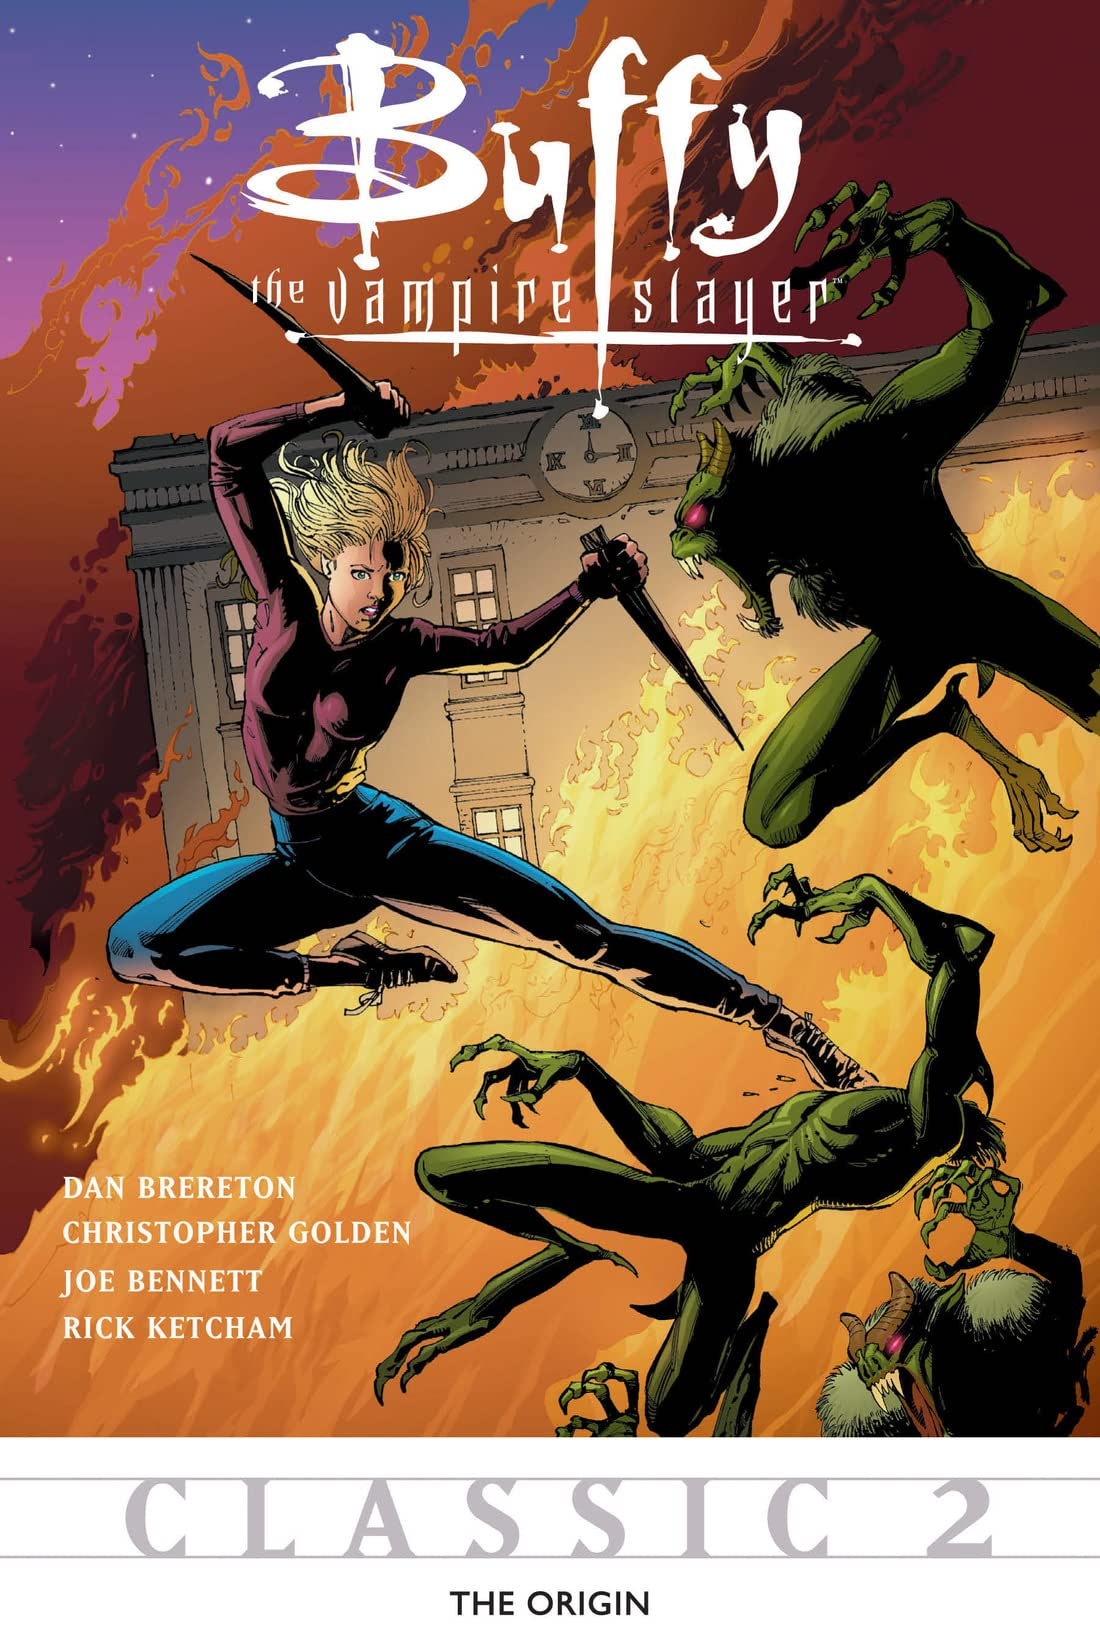 Buffy the Vampire Slayer Classic #2: The Origin